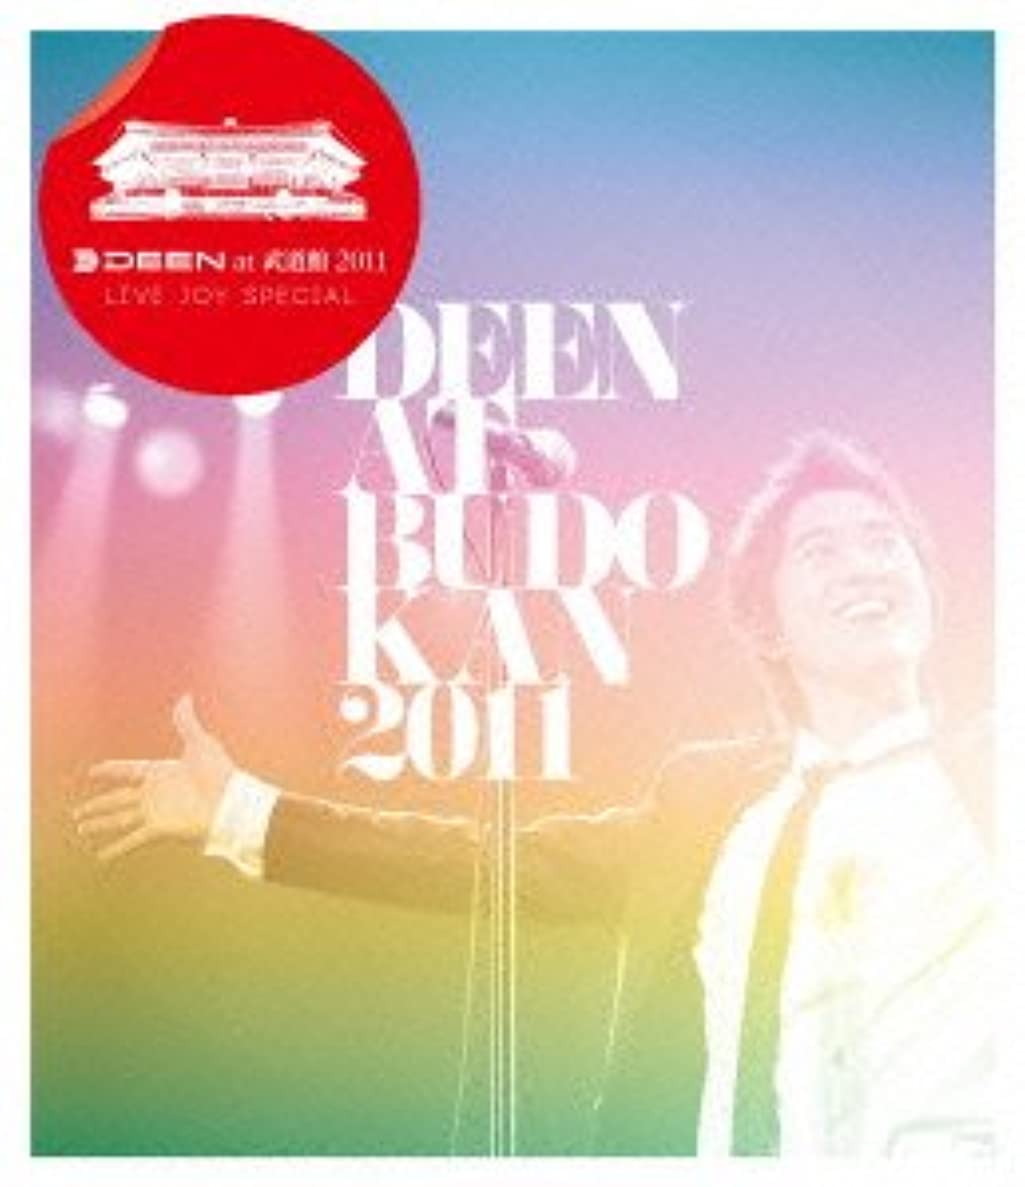 好色な警戒修正DEEN at 武道館 2011 LIVE JOY SPECIAL [Blu-ray]